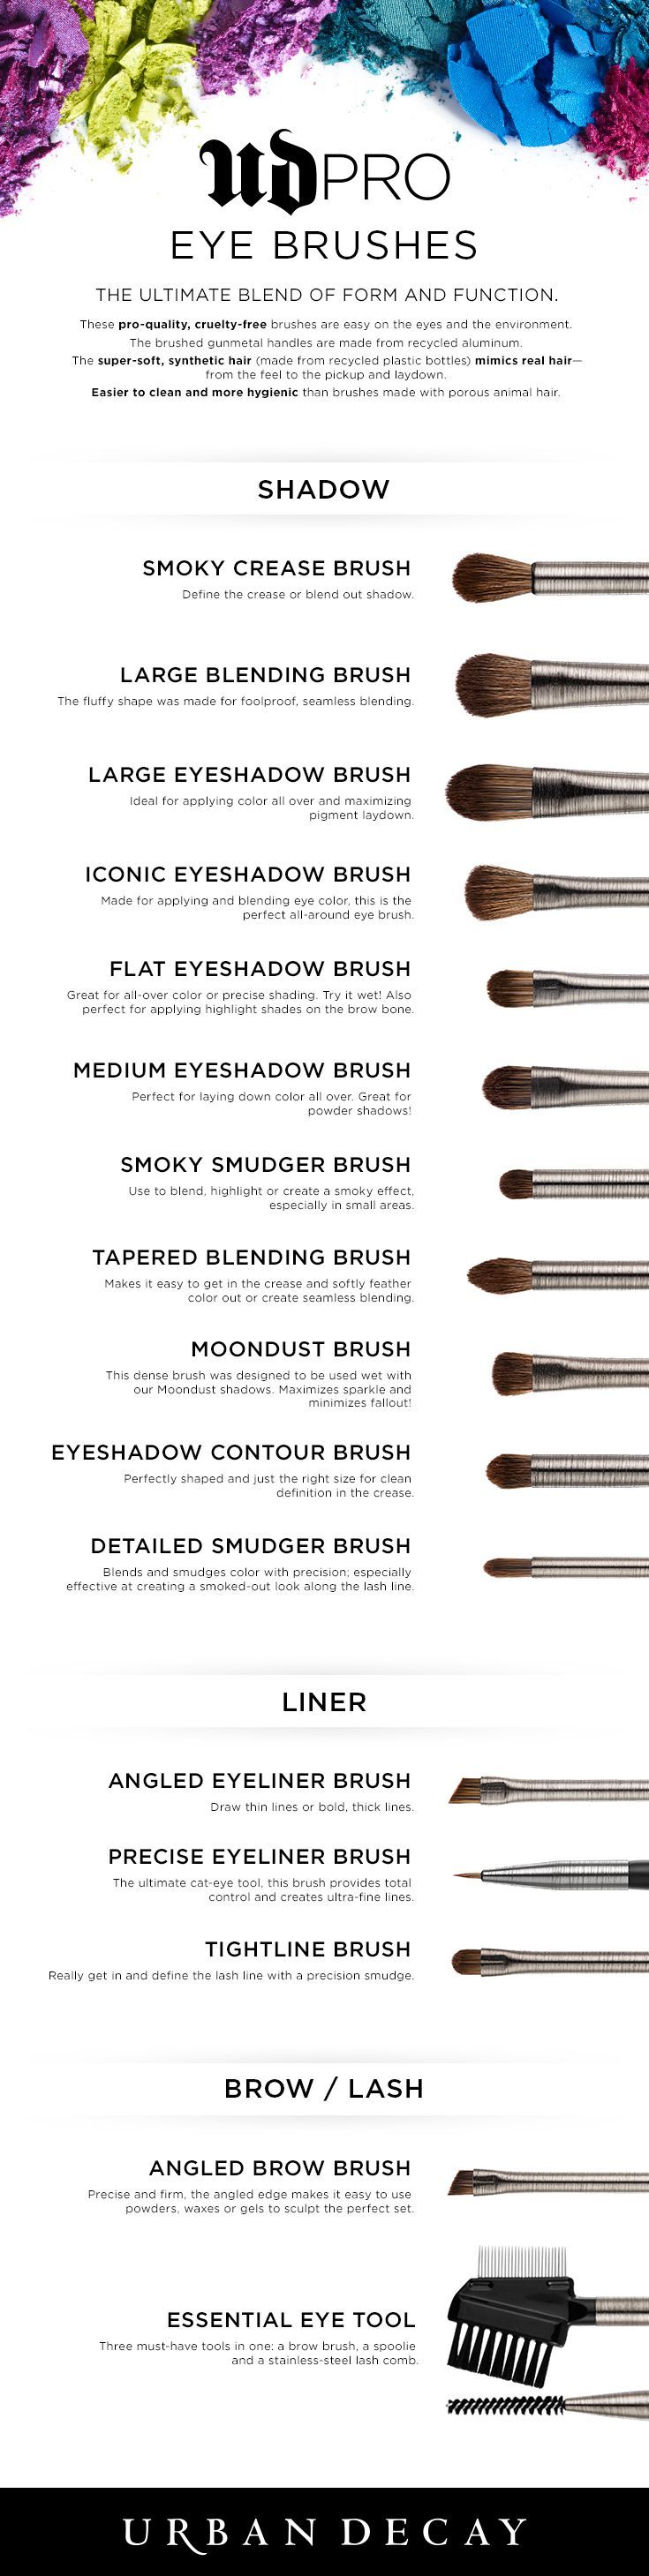 From Eye Shadow to Eyeliner, get all of the UD Pro Brushes and Tools you need to create the perfect eye looks. Nail Design, Nail Art, Nail Salon, Irvine, Newport Beach